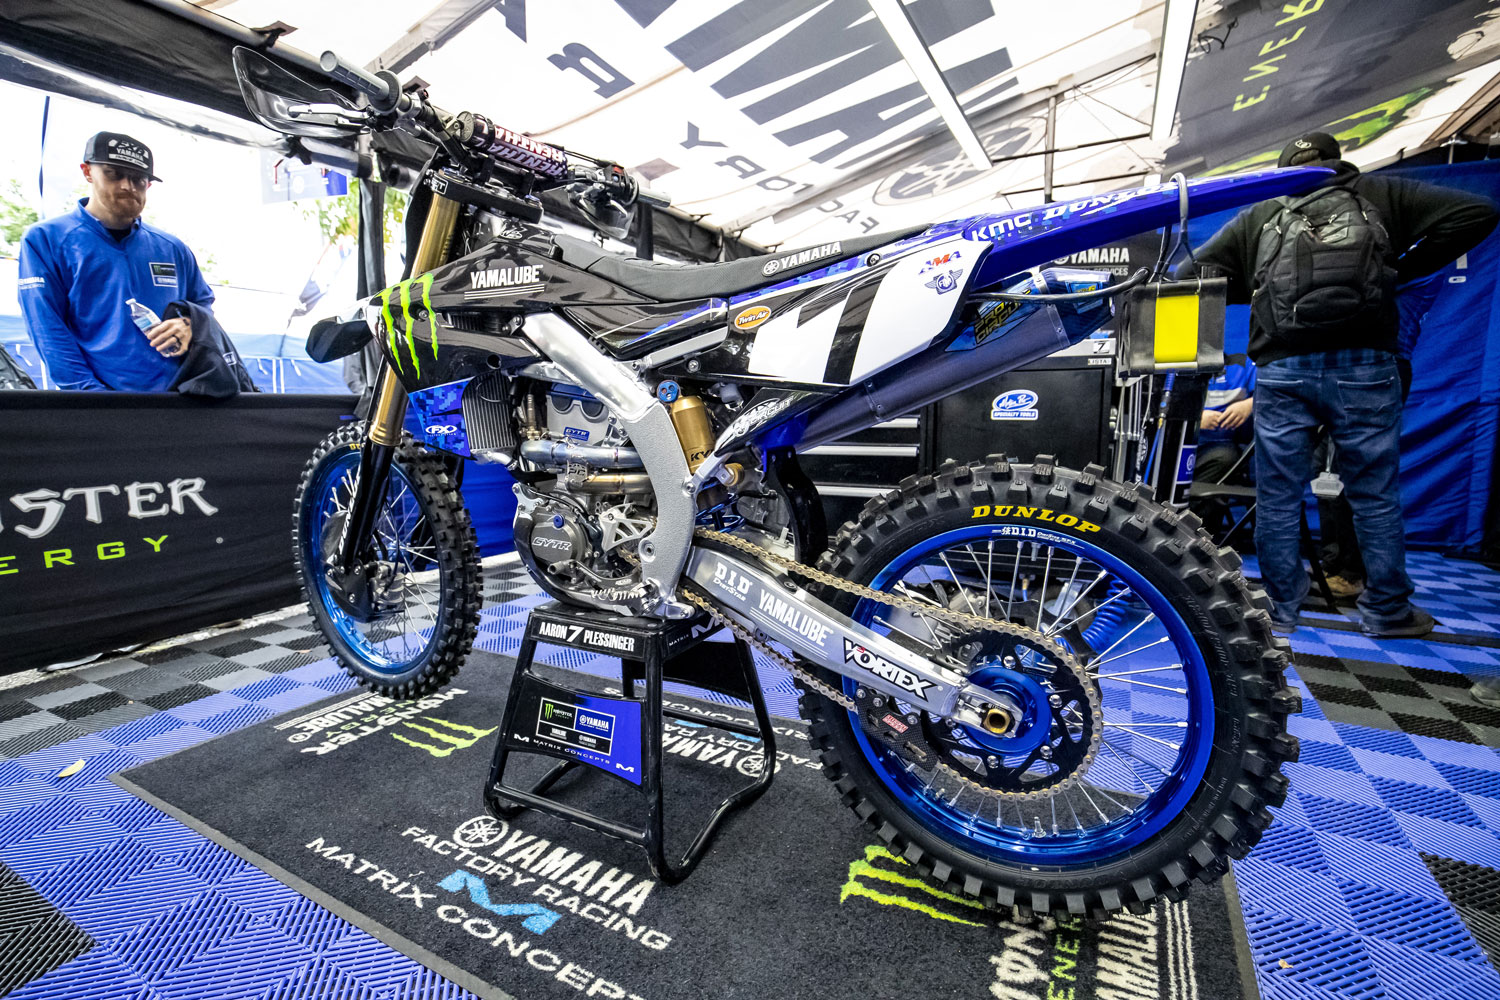 Yamaha Racing's bikes featured a camo theme for military appreciation